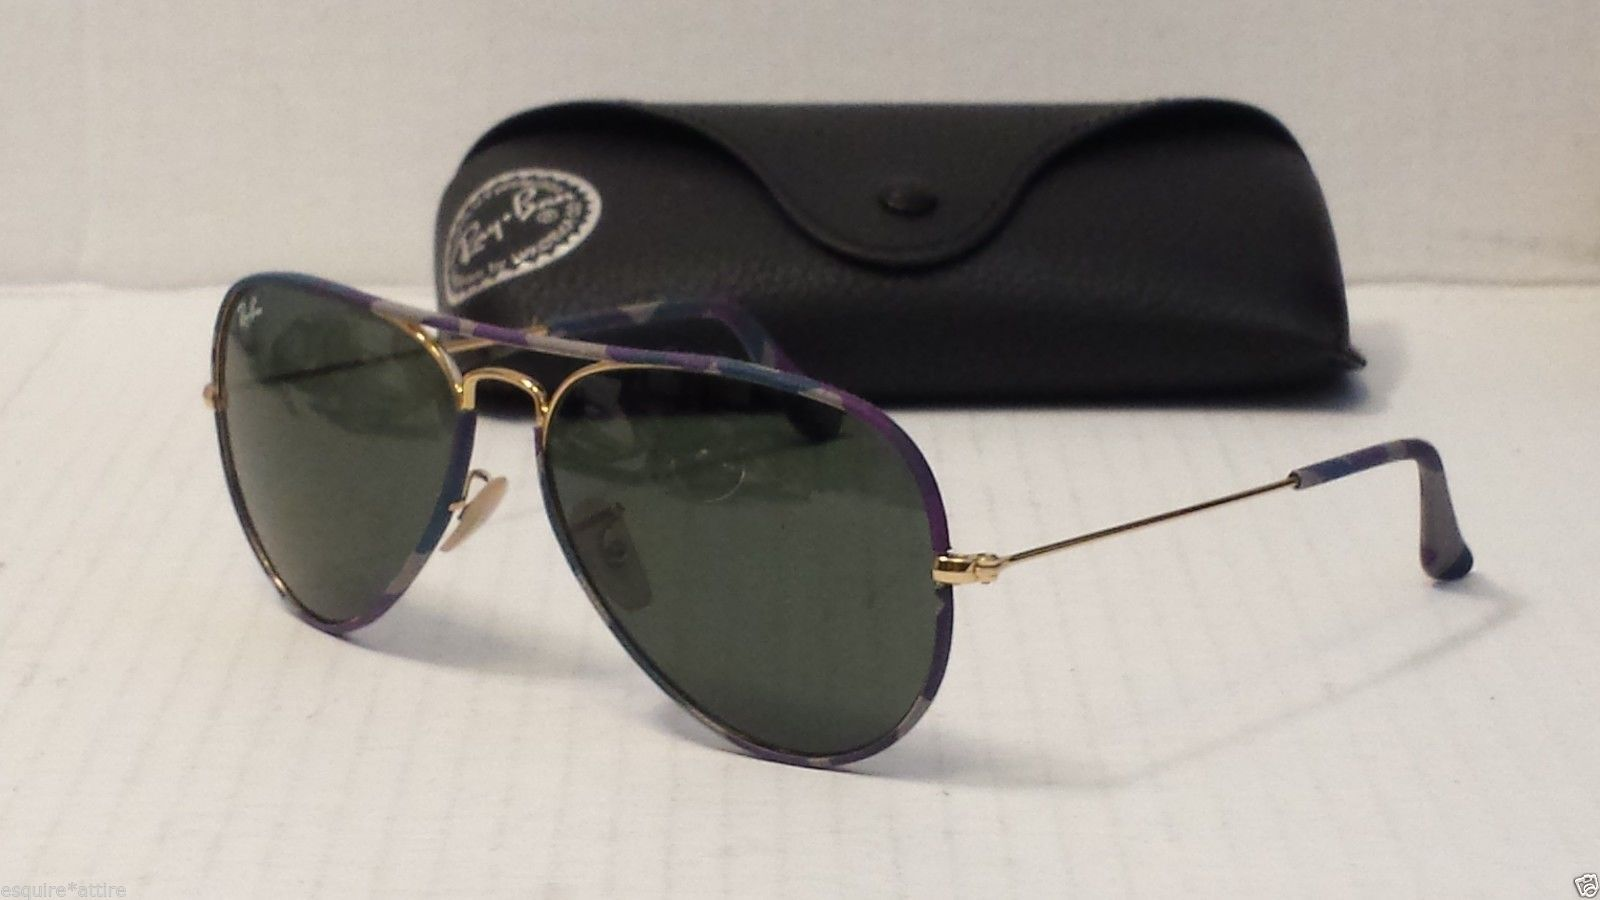 1f5d627a5a45 Black Ray-Ban sunglasses Erica style black ray ban sunglasses  perfect  condition no signs